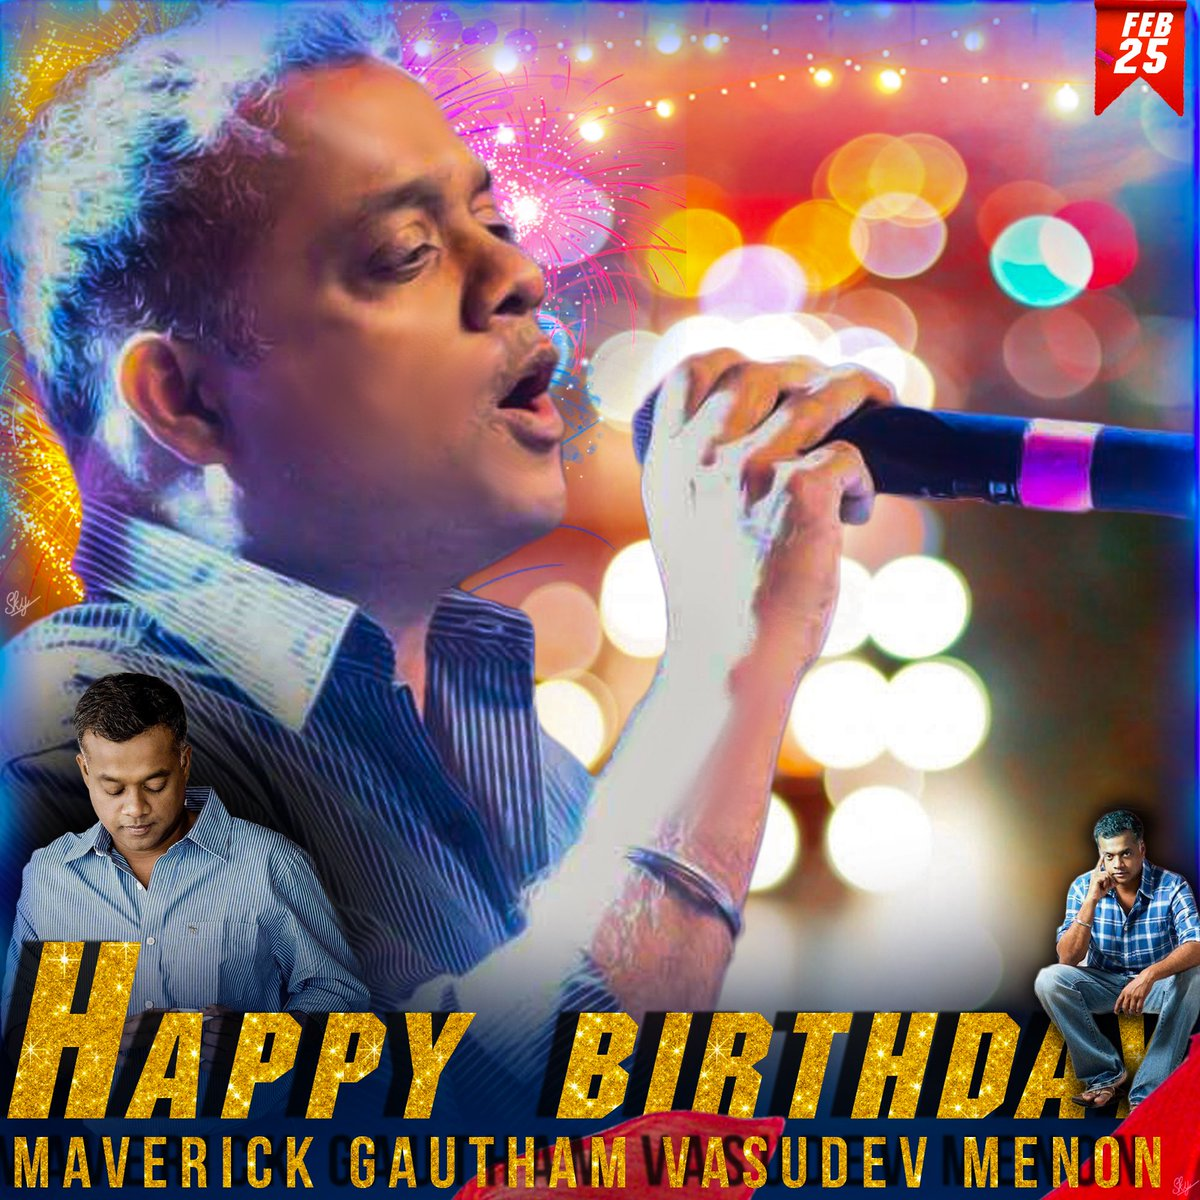 On behalf of birthday   A common dp done by the fans :)   Advance happy birthday sir :)